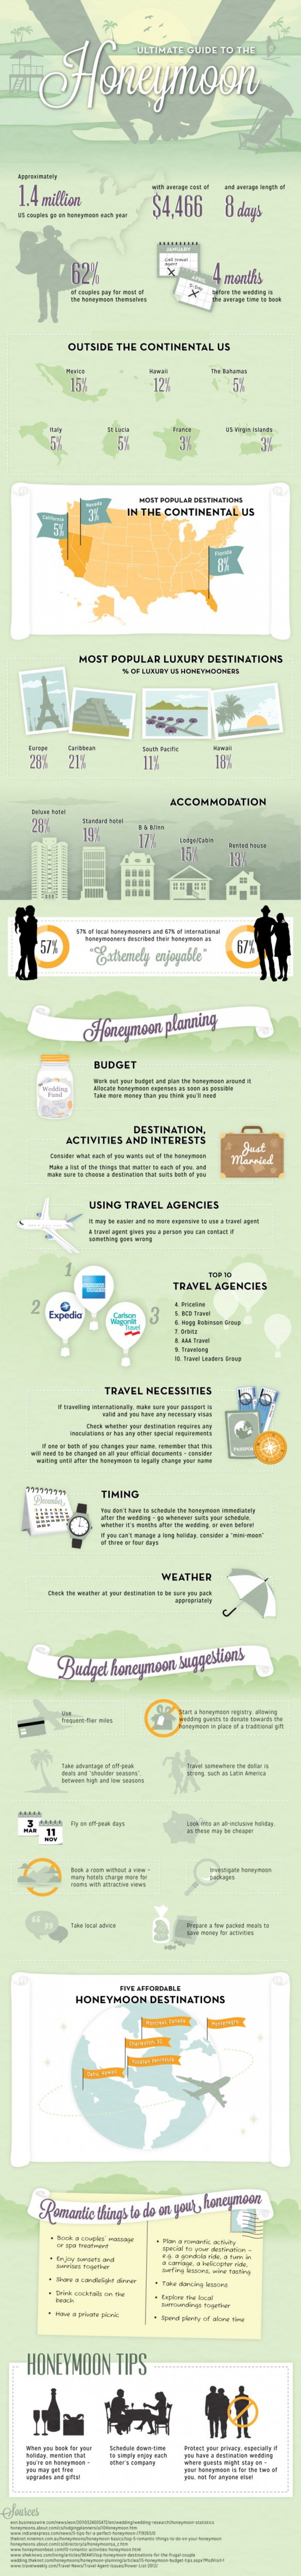 The Ultimate Guide To The Honeymoon Infographic